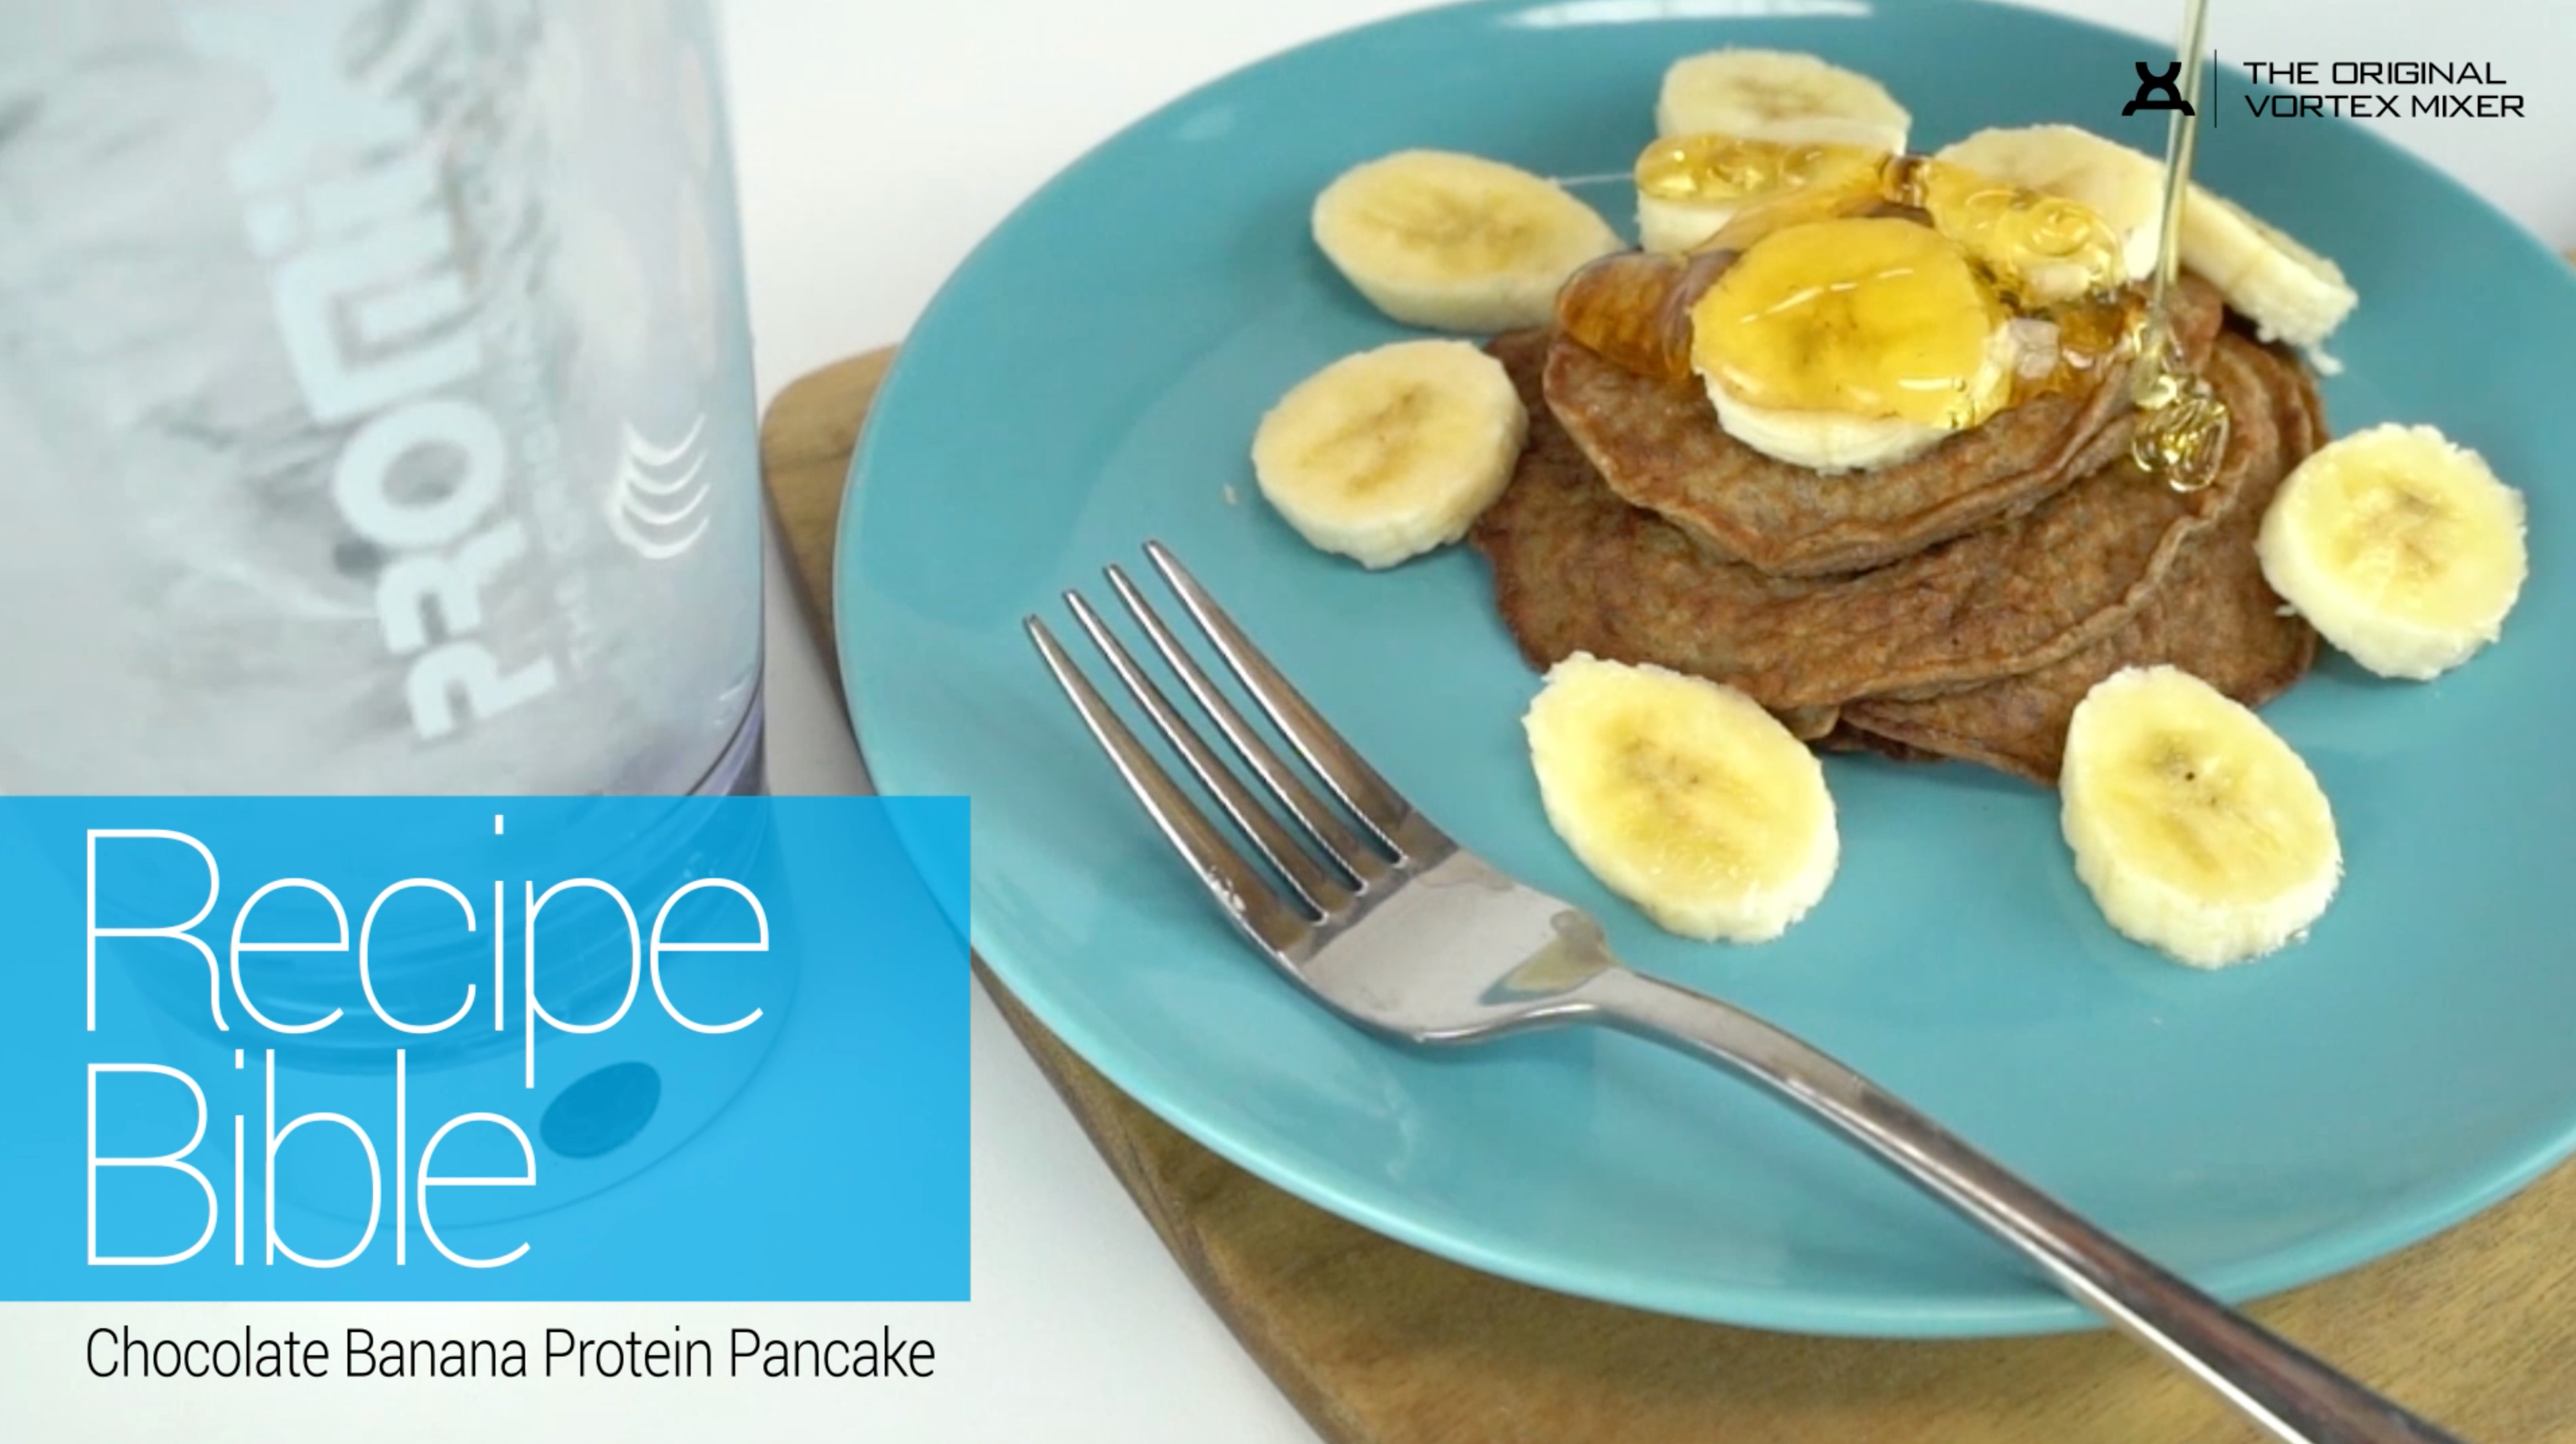 Chocolate Banana Protein Pancakes Recipe